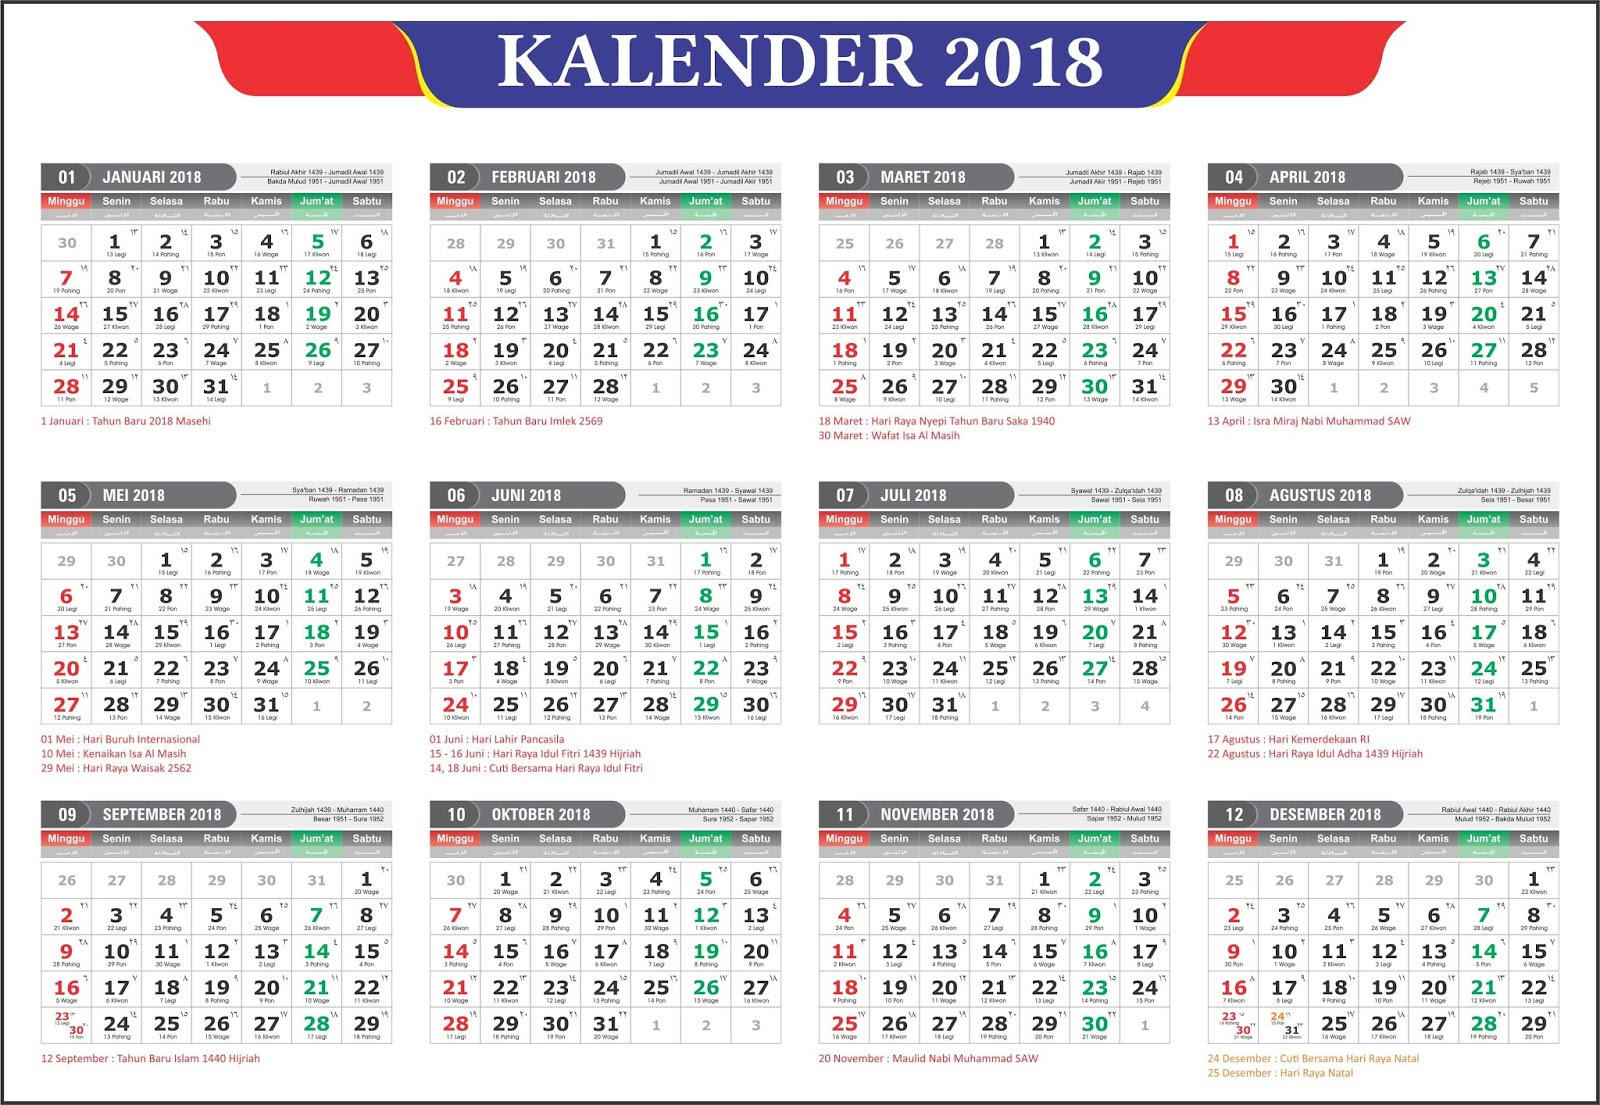 Kalender 2018 2018 calendar printable for free download india usa uk kalender 2018 masehi stopboris Gallery